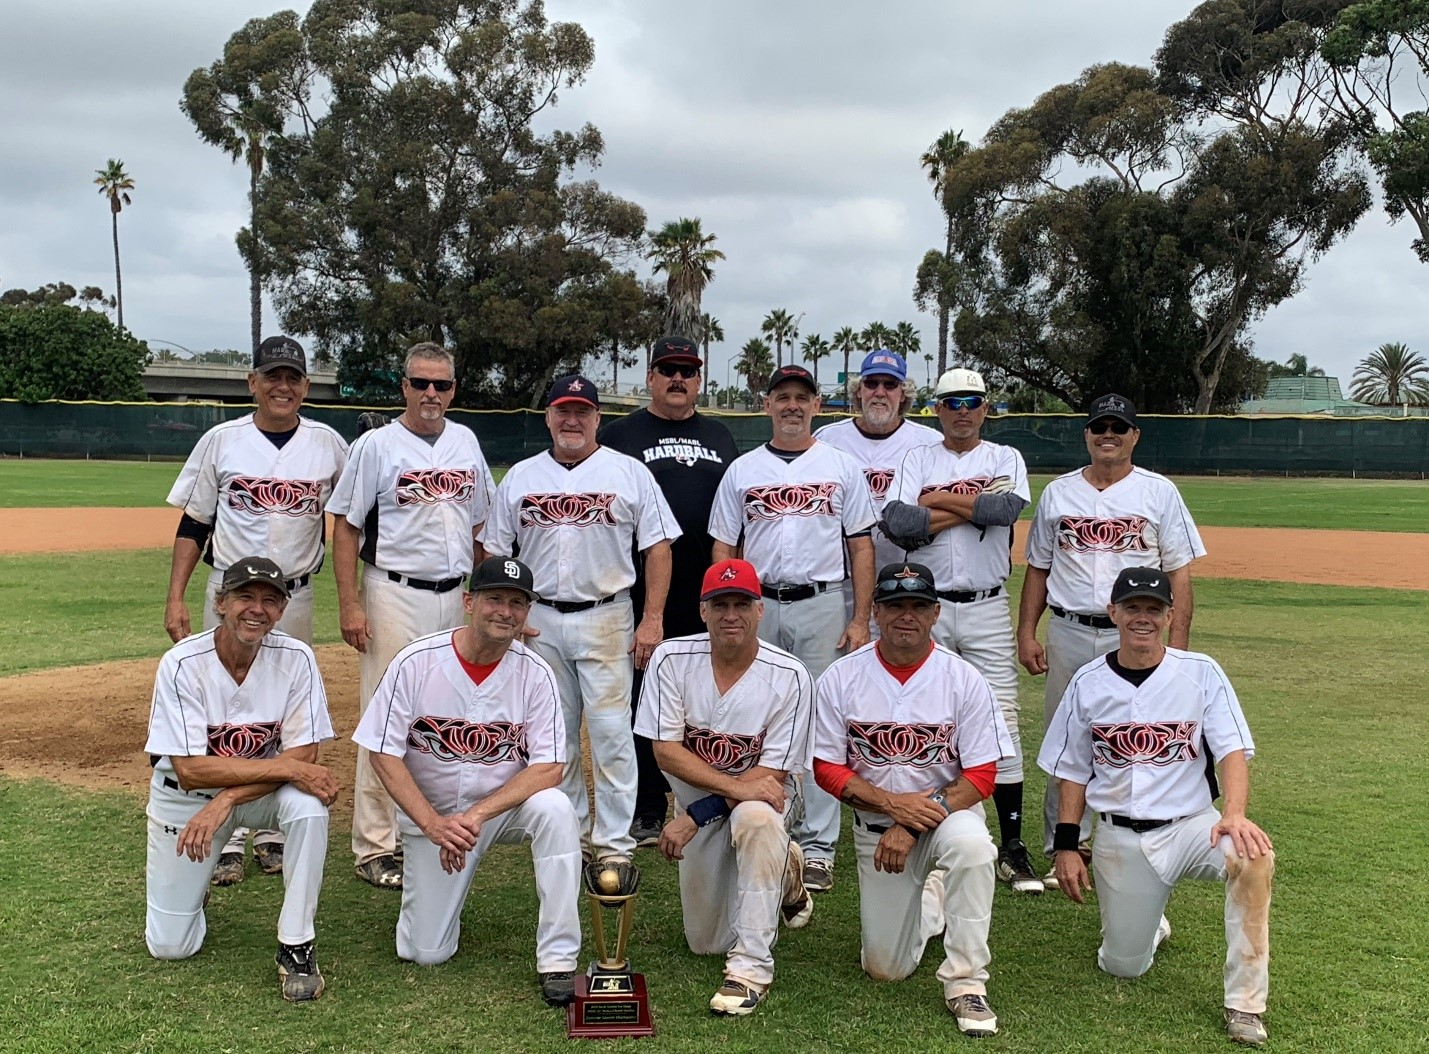 2018 MSBL 55+ NATIONAL DIVISION SUMMER LEAGUE CHAMPIONS NORTH COUNTY STORMS